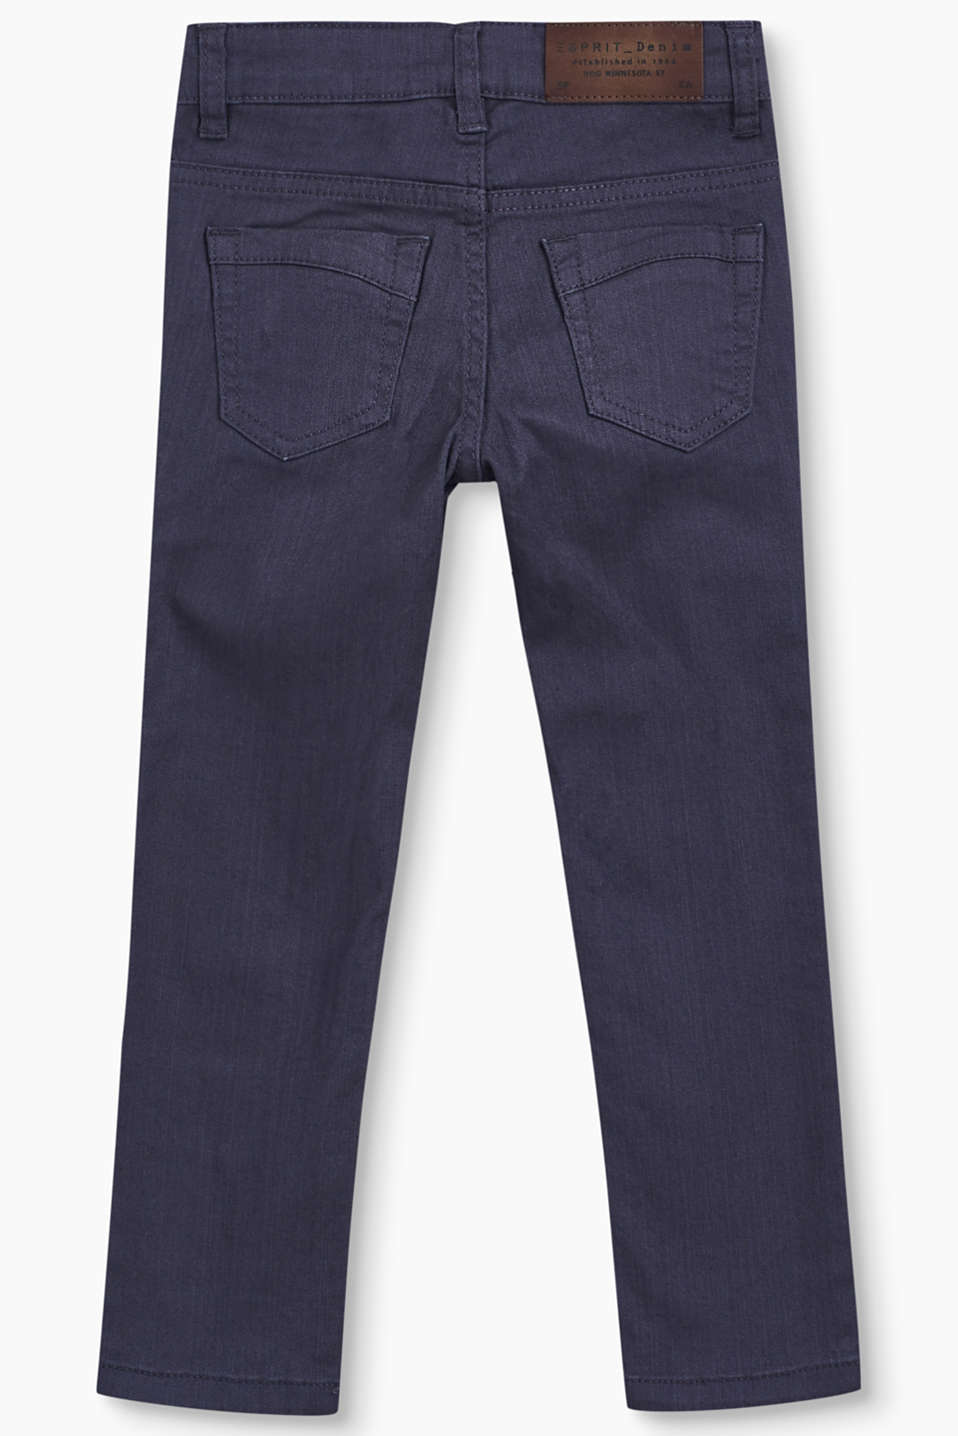 Weiche 5-Pocket-Jeans mit Stretch-Komfort